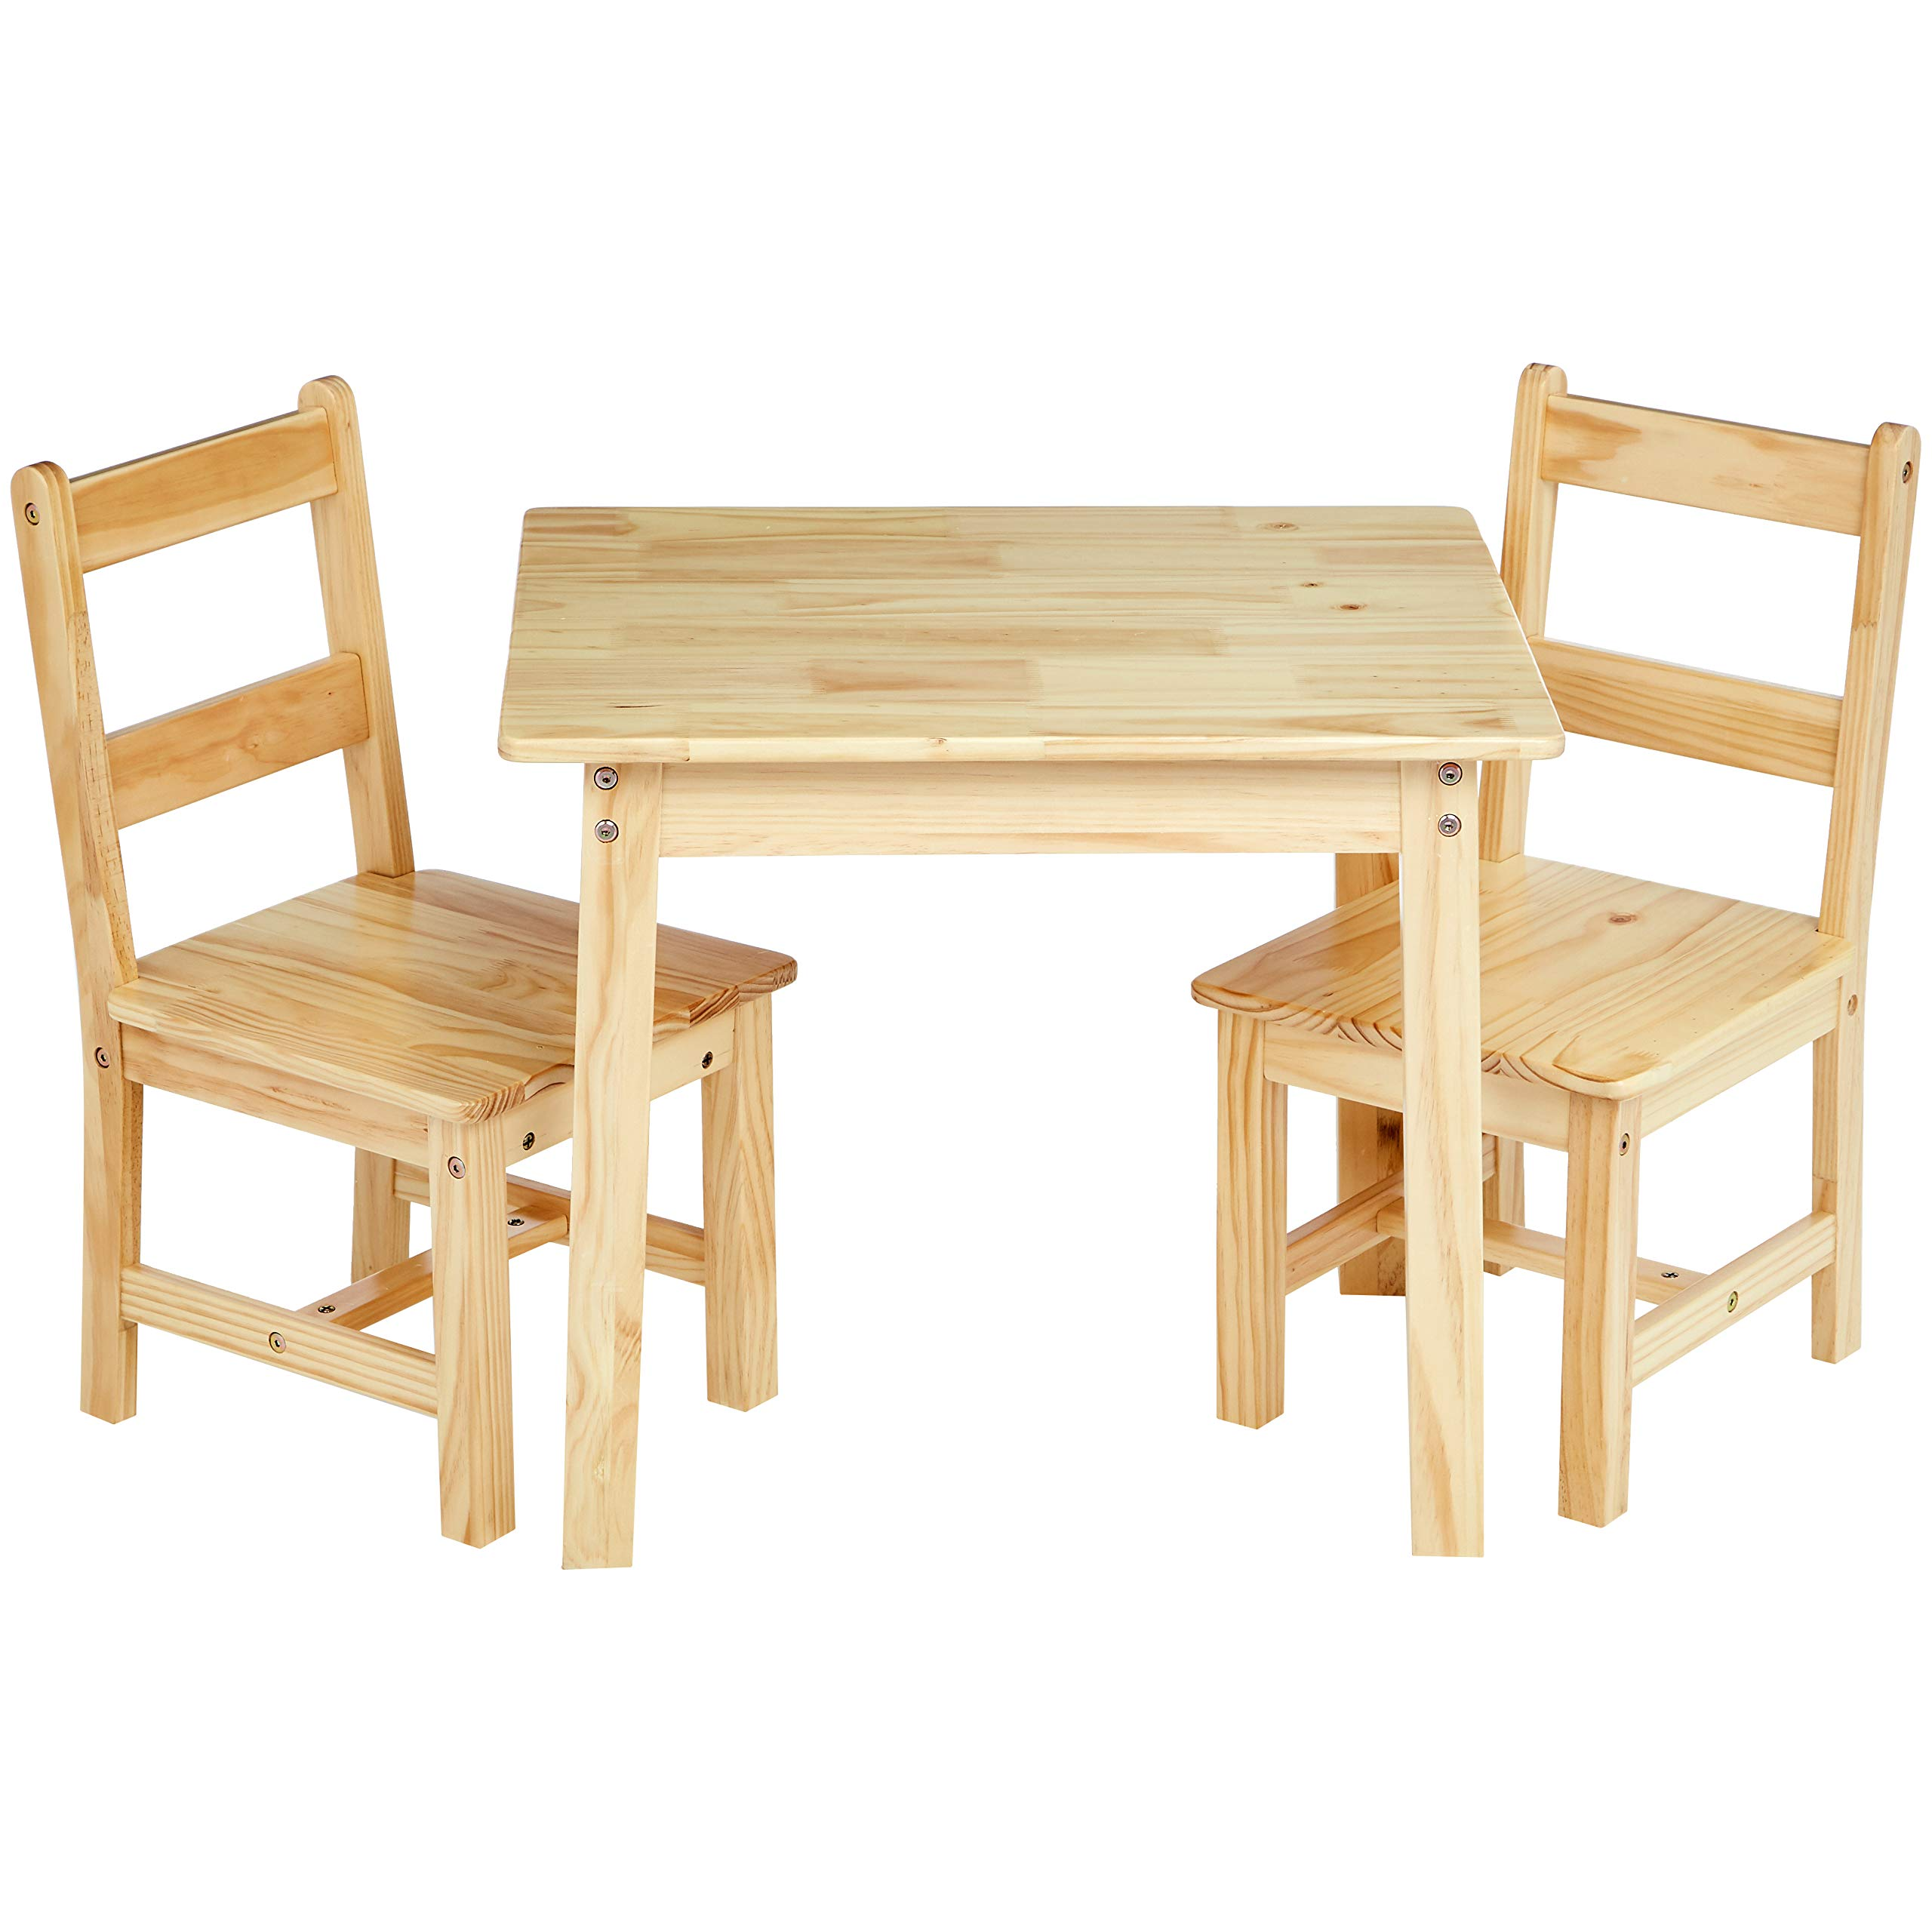 AmazonBasics Kids Solid Wood Table and 2 Chair Set, Natural by AmazonBasics